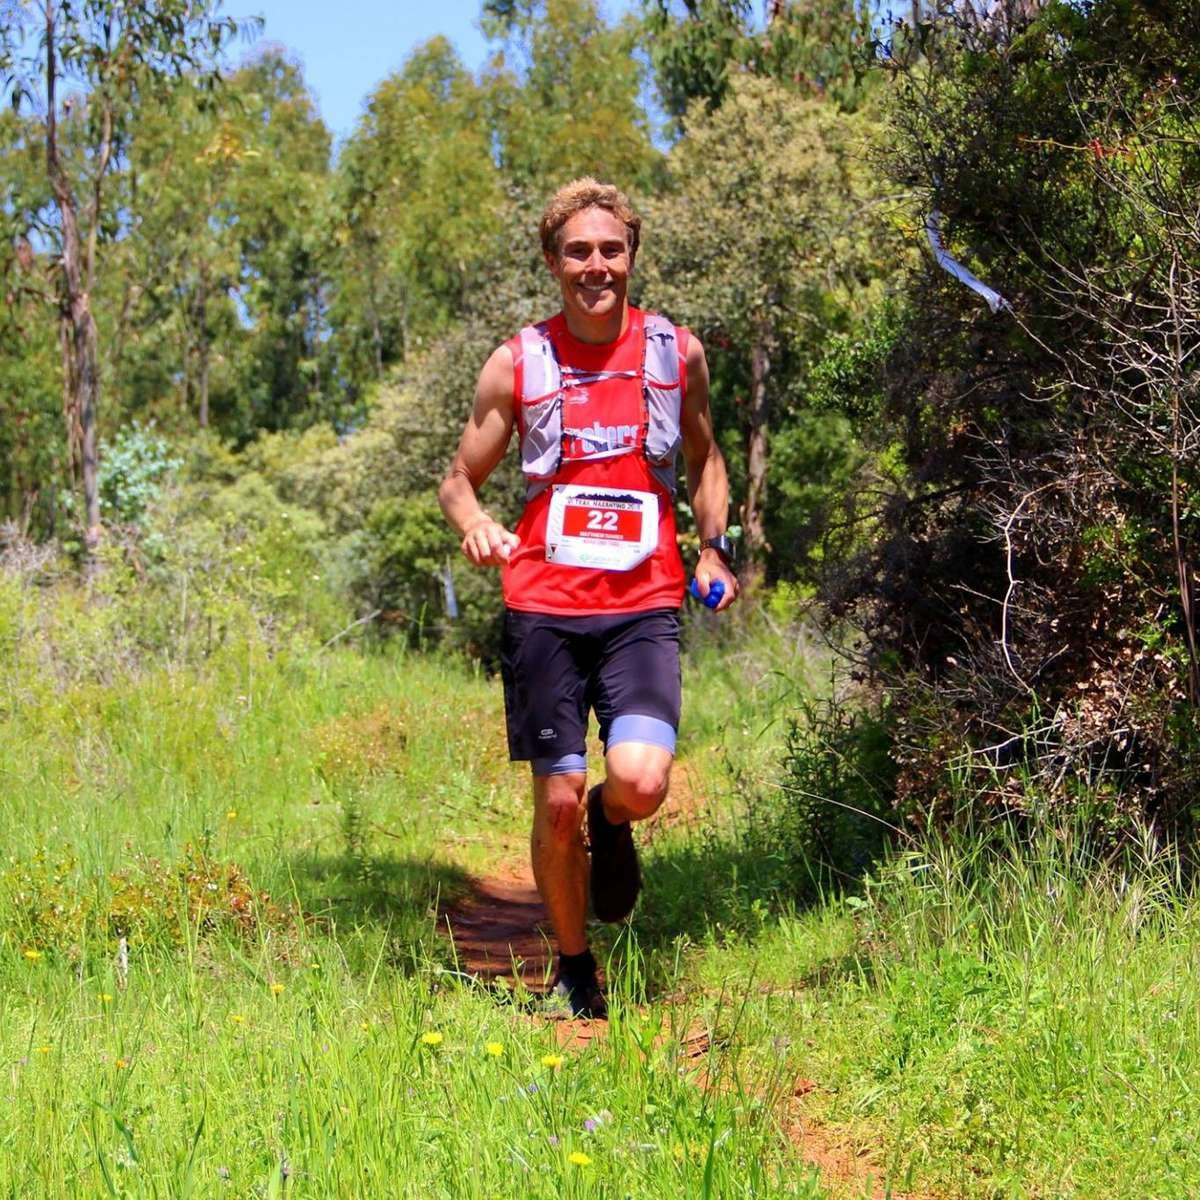 Co-founder Matt during his latest trail race